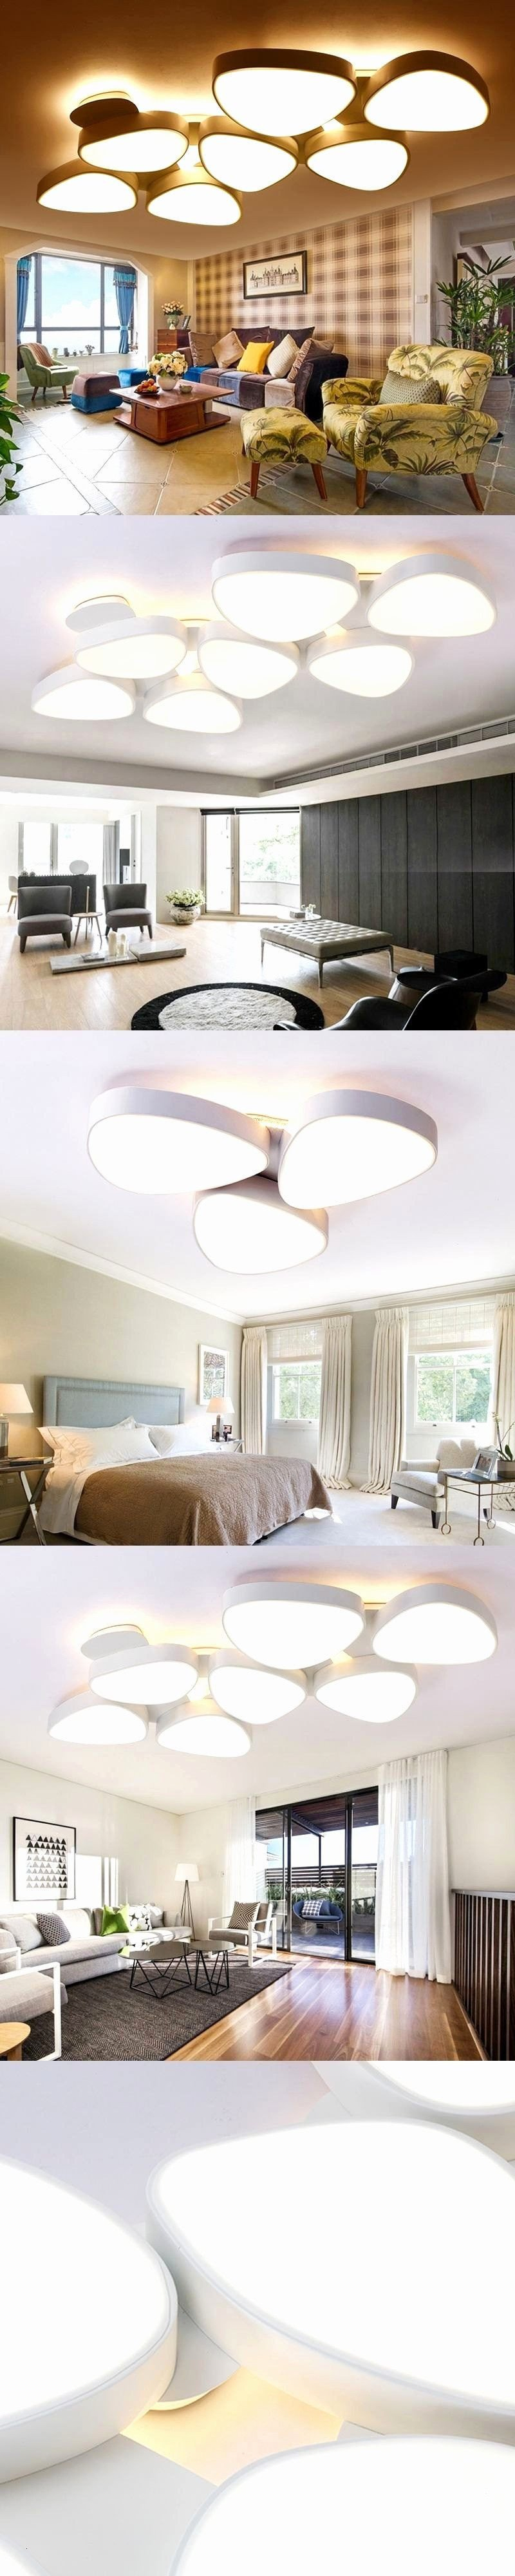 Chandelier Lighting for Bedroom Beautiful Flush Mount Chandelier Elegant Pendant Light Revit